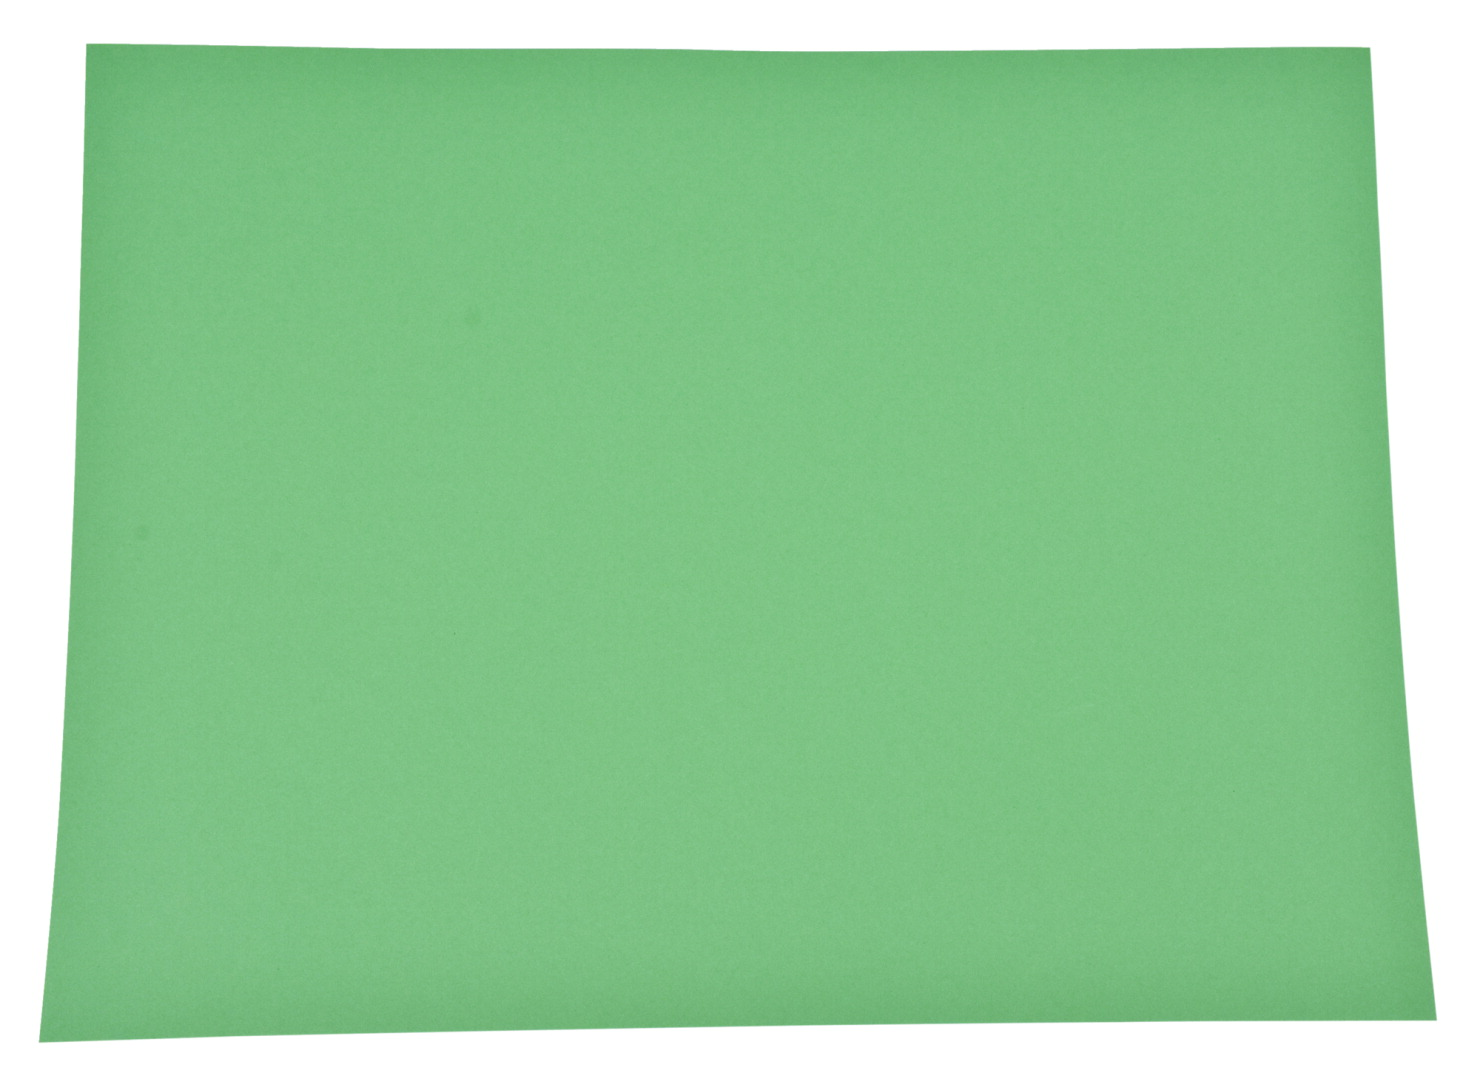 Sax Colored Art Paper, 9 x 12 Inches, Emerald Green, 50 Sheets